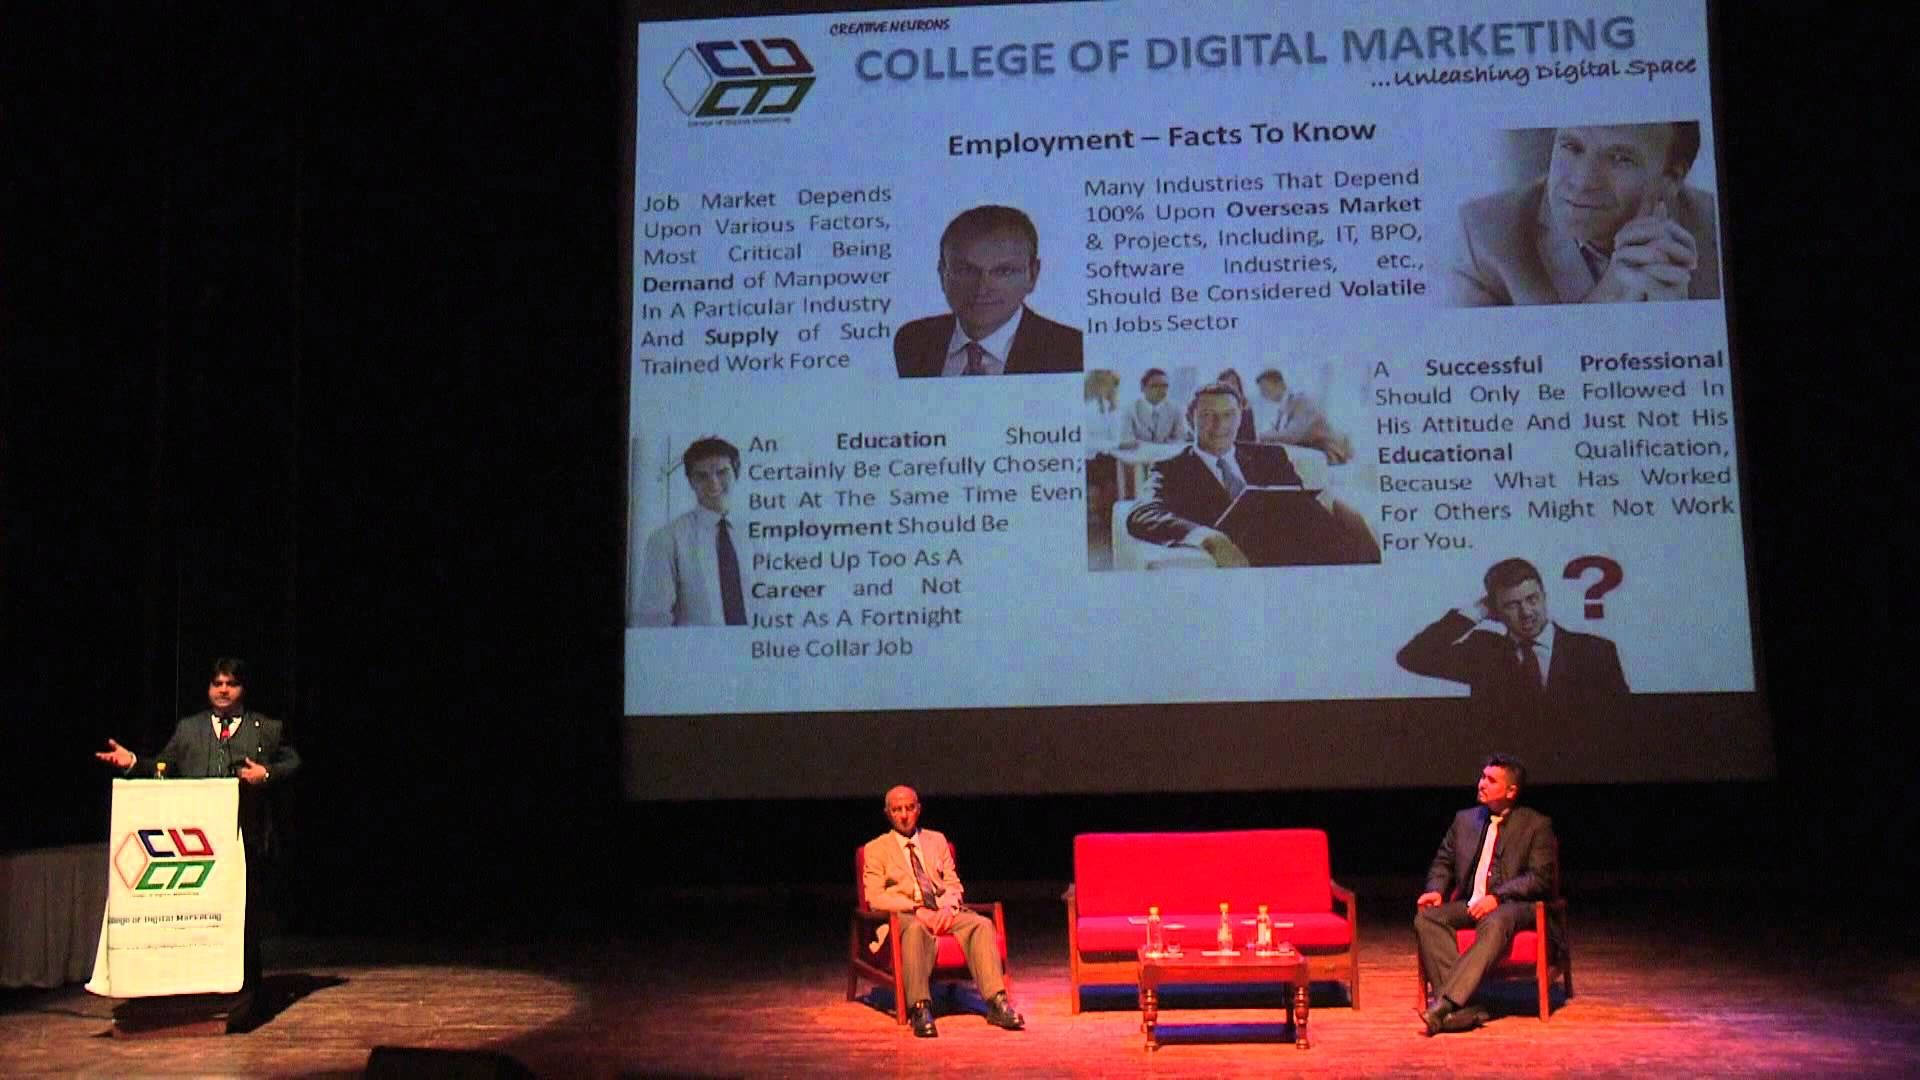 Marketing is no longer about making cold calls, spreading flyers and shaking hands while exchanging business cards. Mr. Chander Kapoor Chairman College of Digital Marketing ...